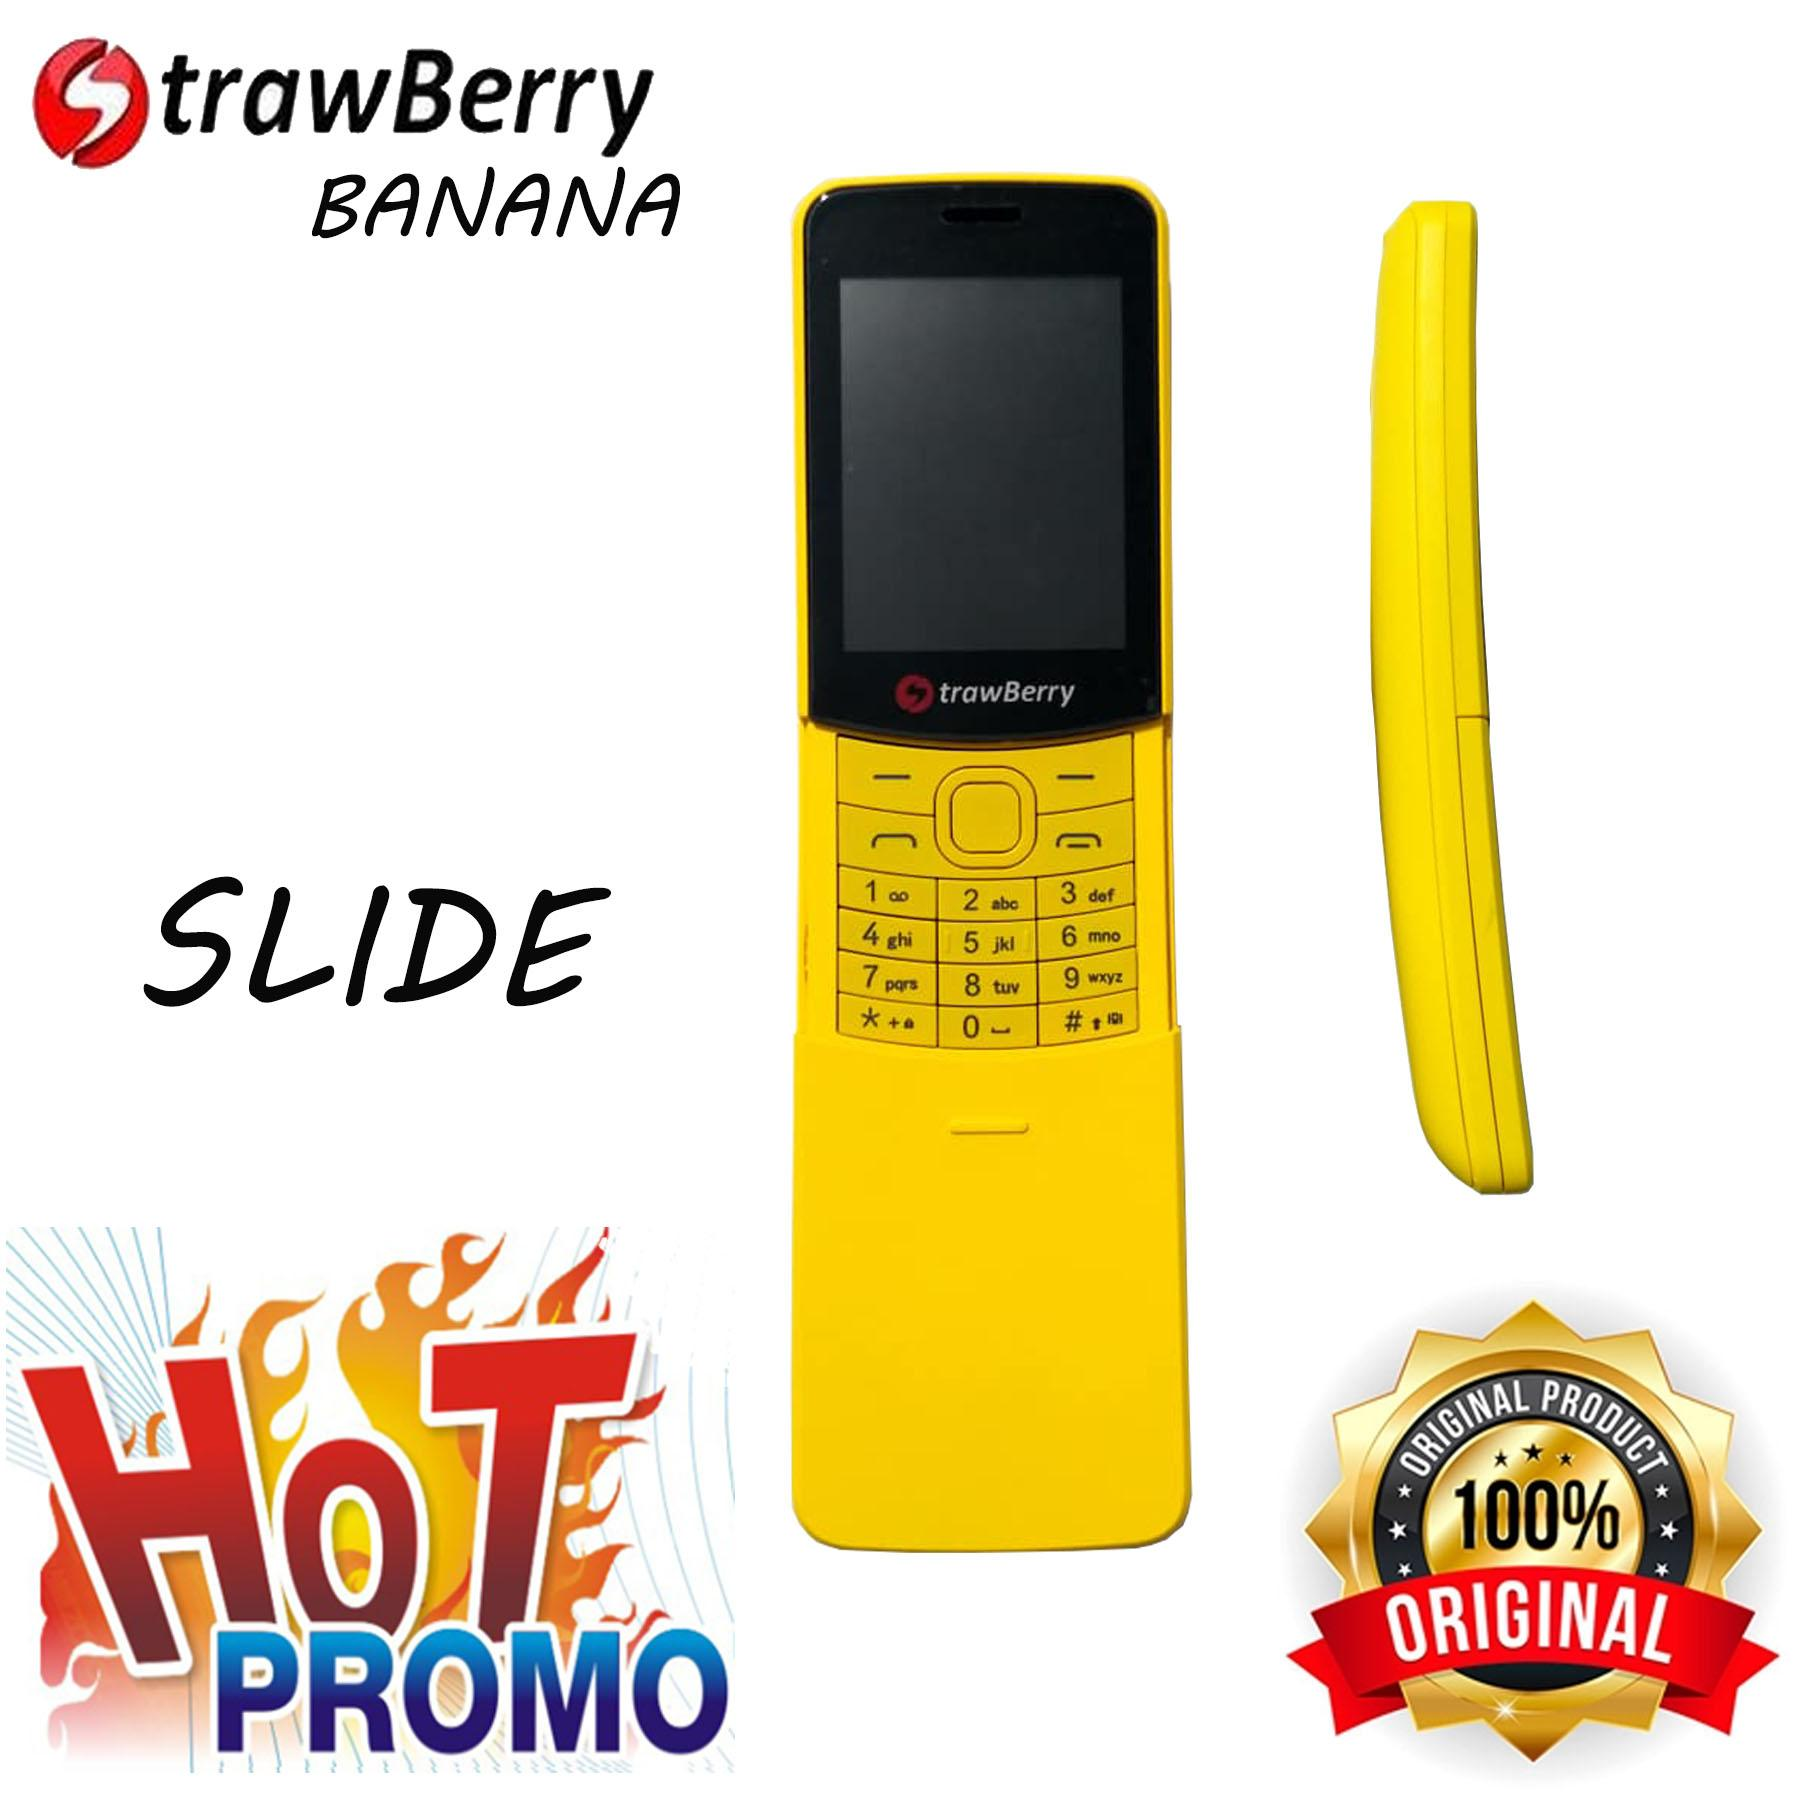 Kelebihan Strawberry St338 Blade Mode Getar Dual Sim Radio Fm Polytron C201 Banana Slide